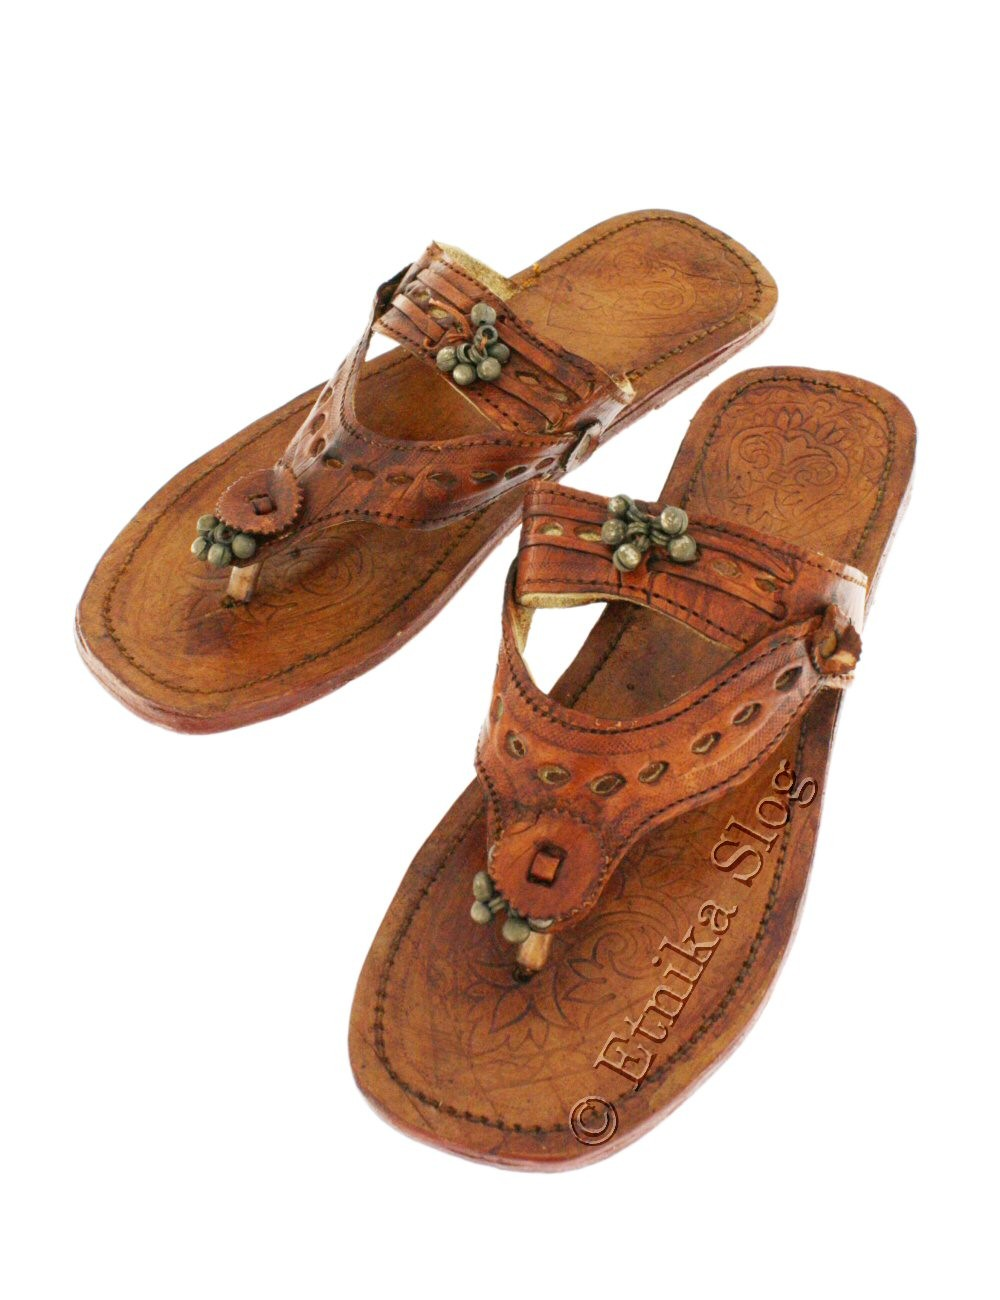 SANDALS AND MULES SN-F01 - Oriente Import S.r.l.